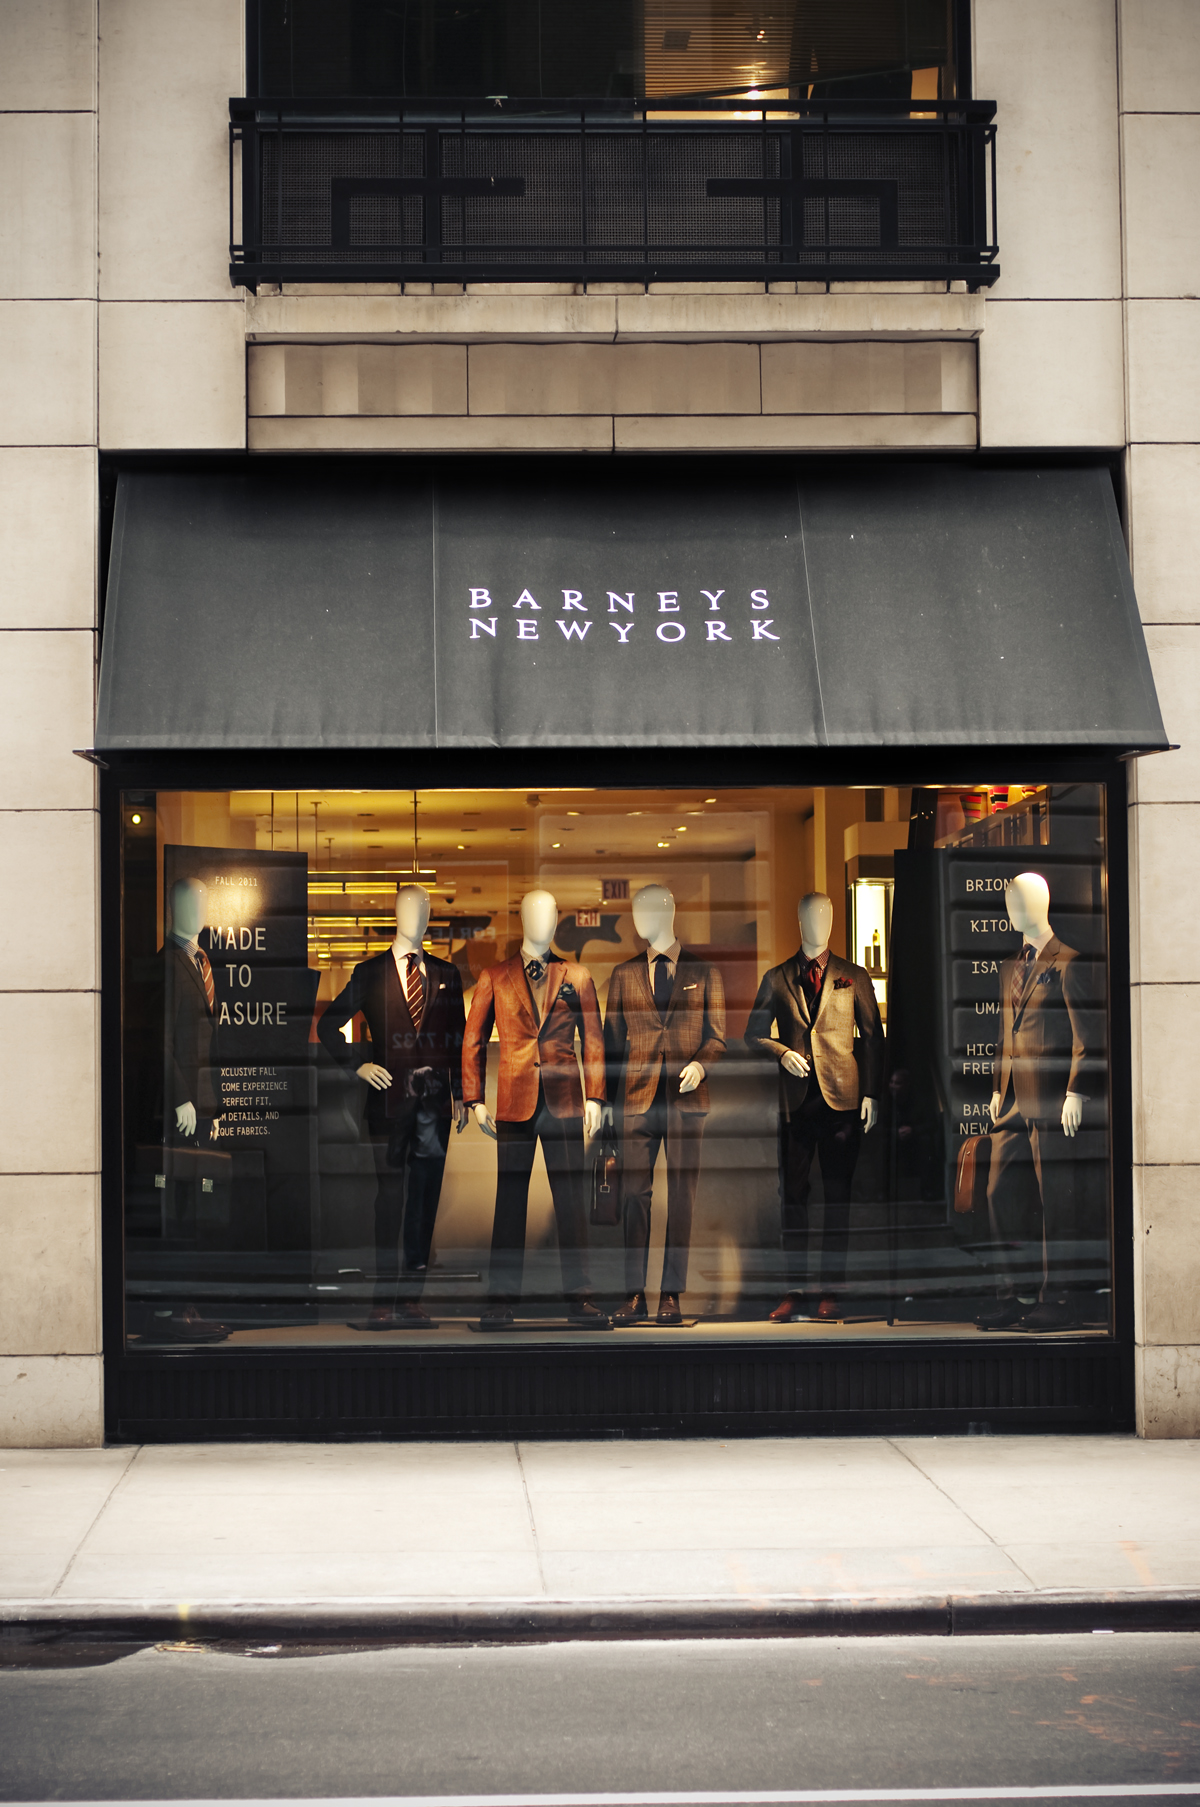 CMO Rich Smith Weighs in on the Future of Iconic Barneys